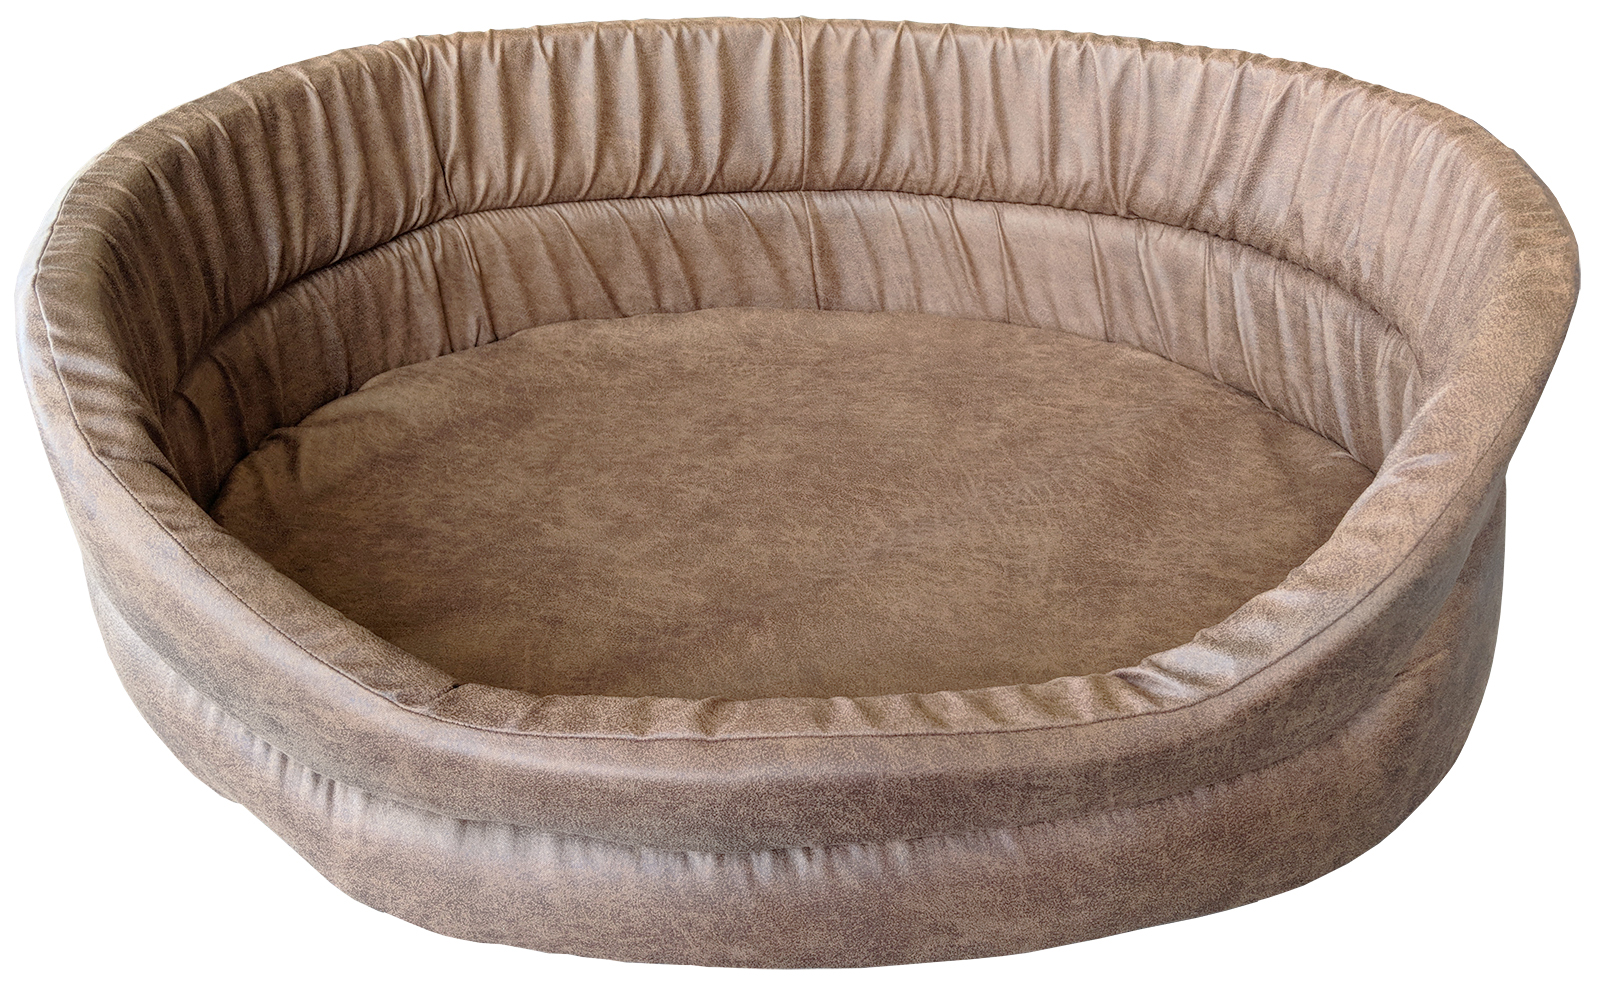 Eco Faux Leather 4 Donut Beds Wholesale Pet Beds Direct